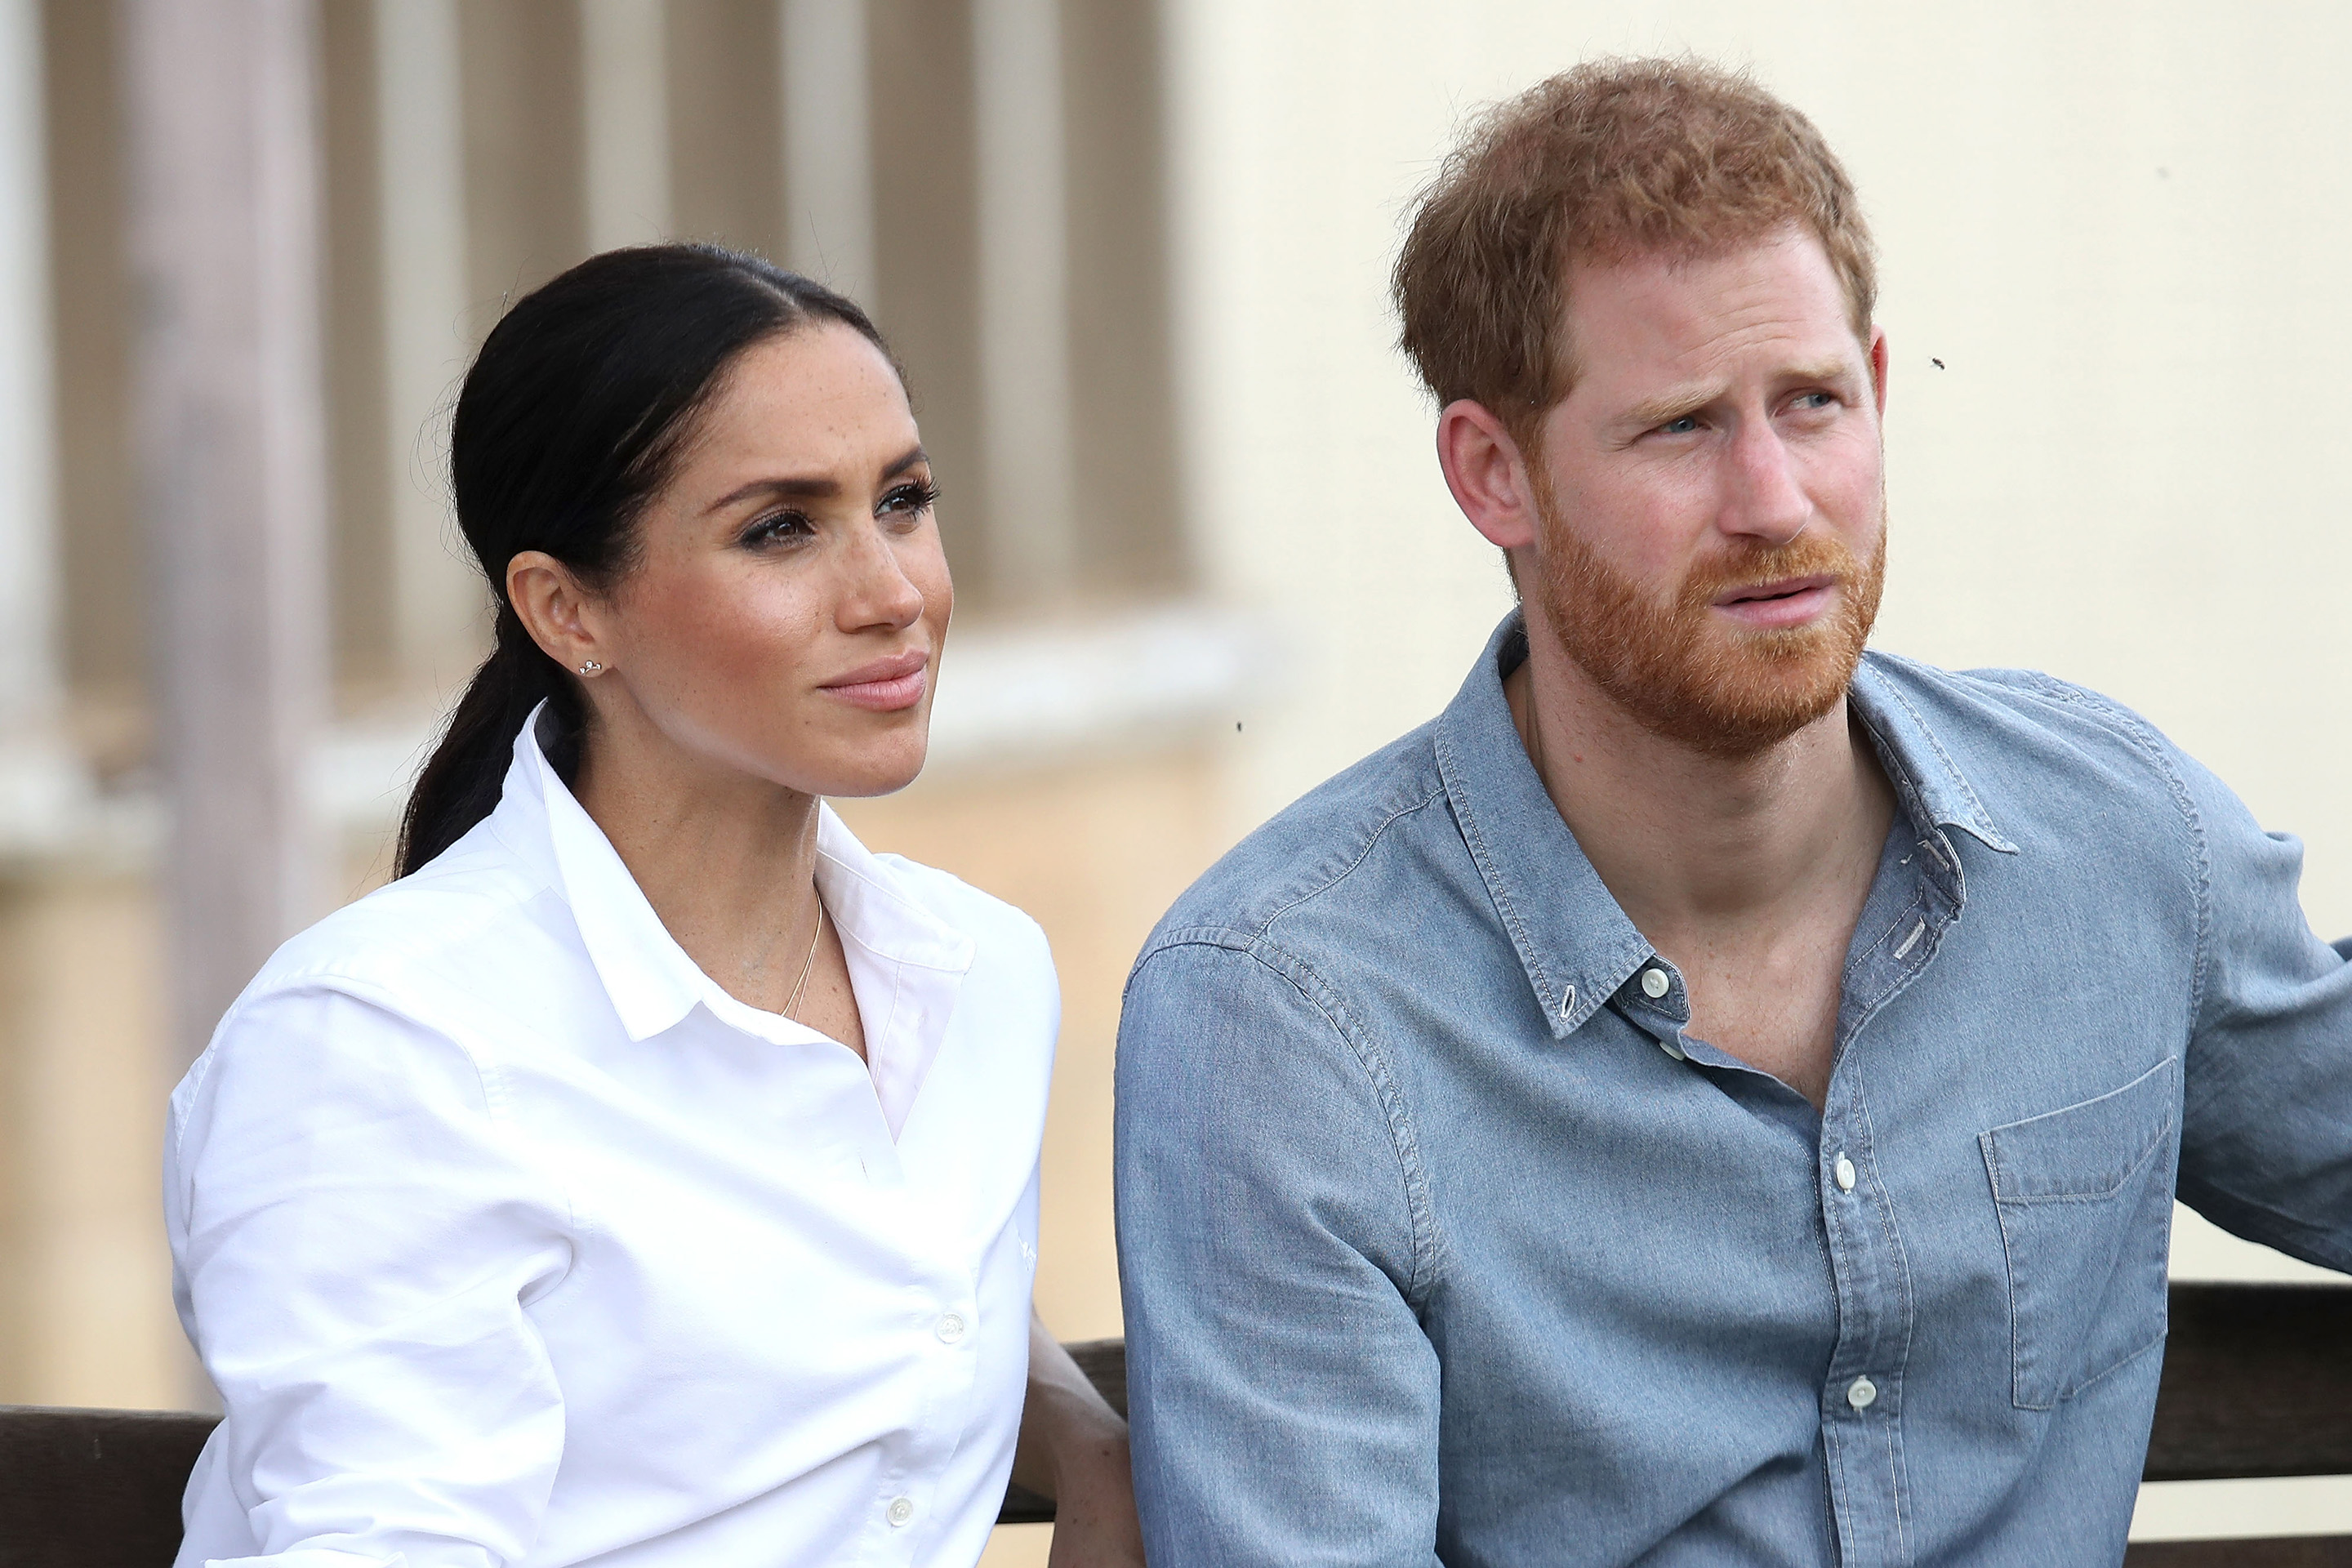 Prince Harry and Meghan have signed a wide-ranging Netflix production deal thumbnail